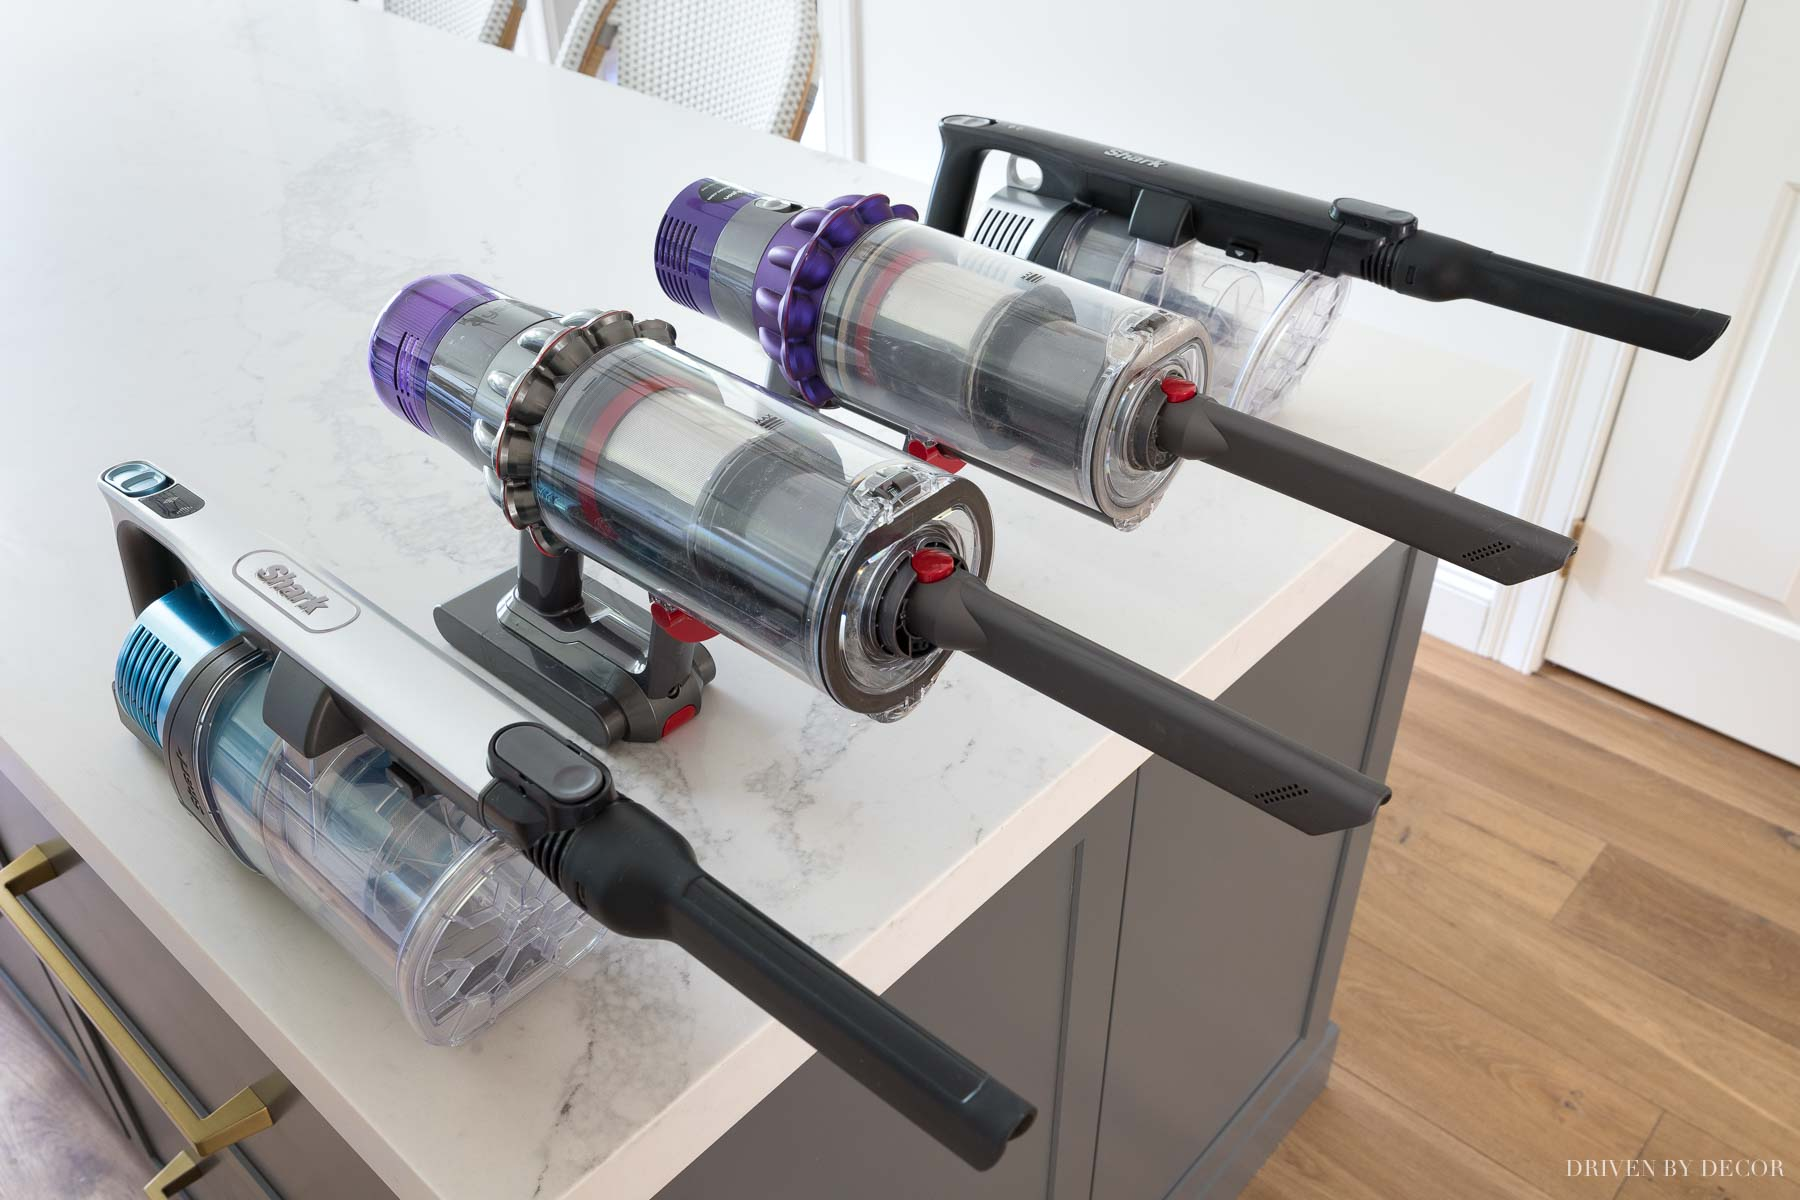 Shark vs. Dyson cordless vacuums - a review of how they compare including handvac functions!